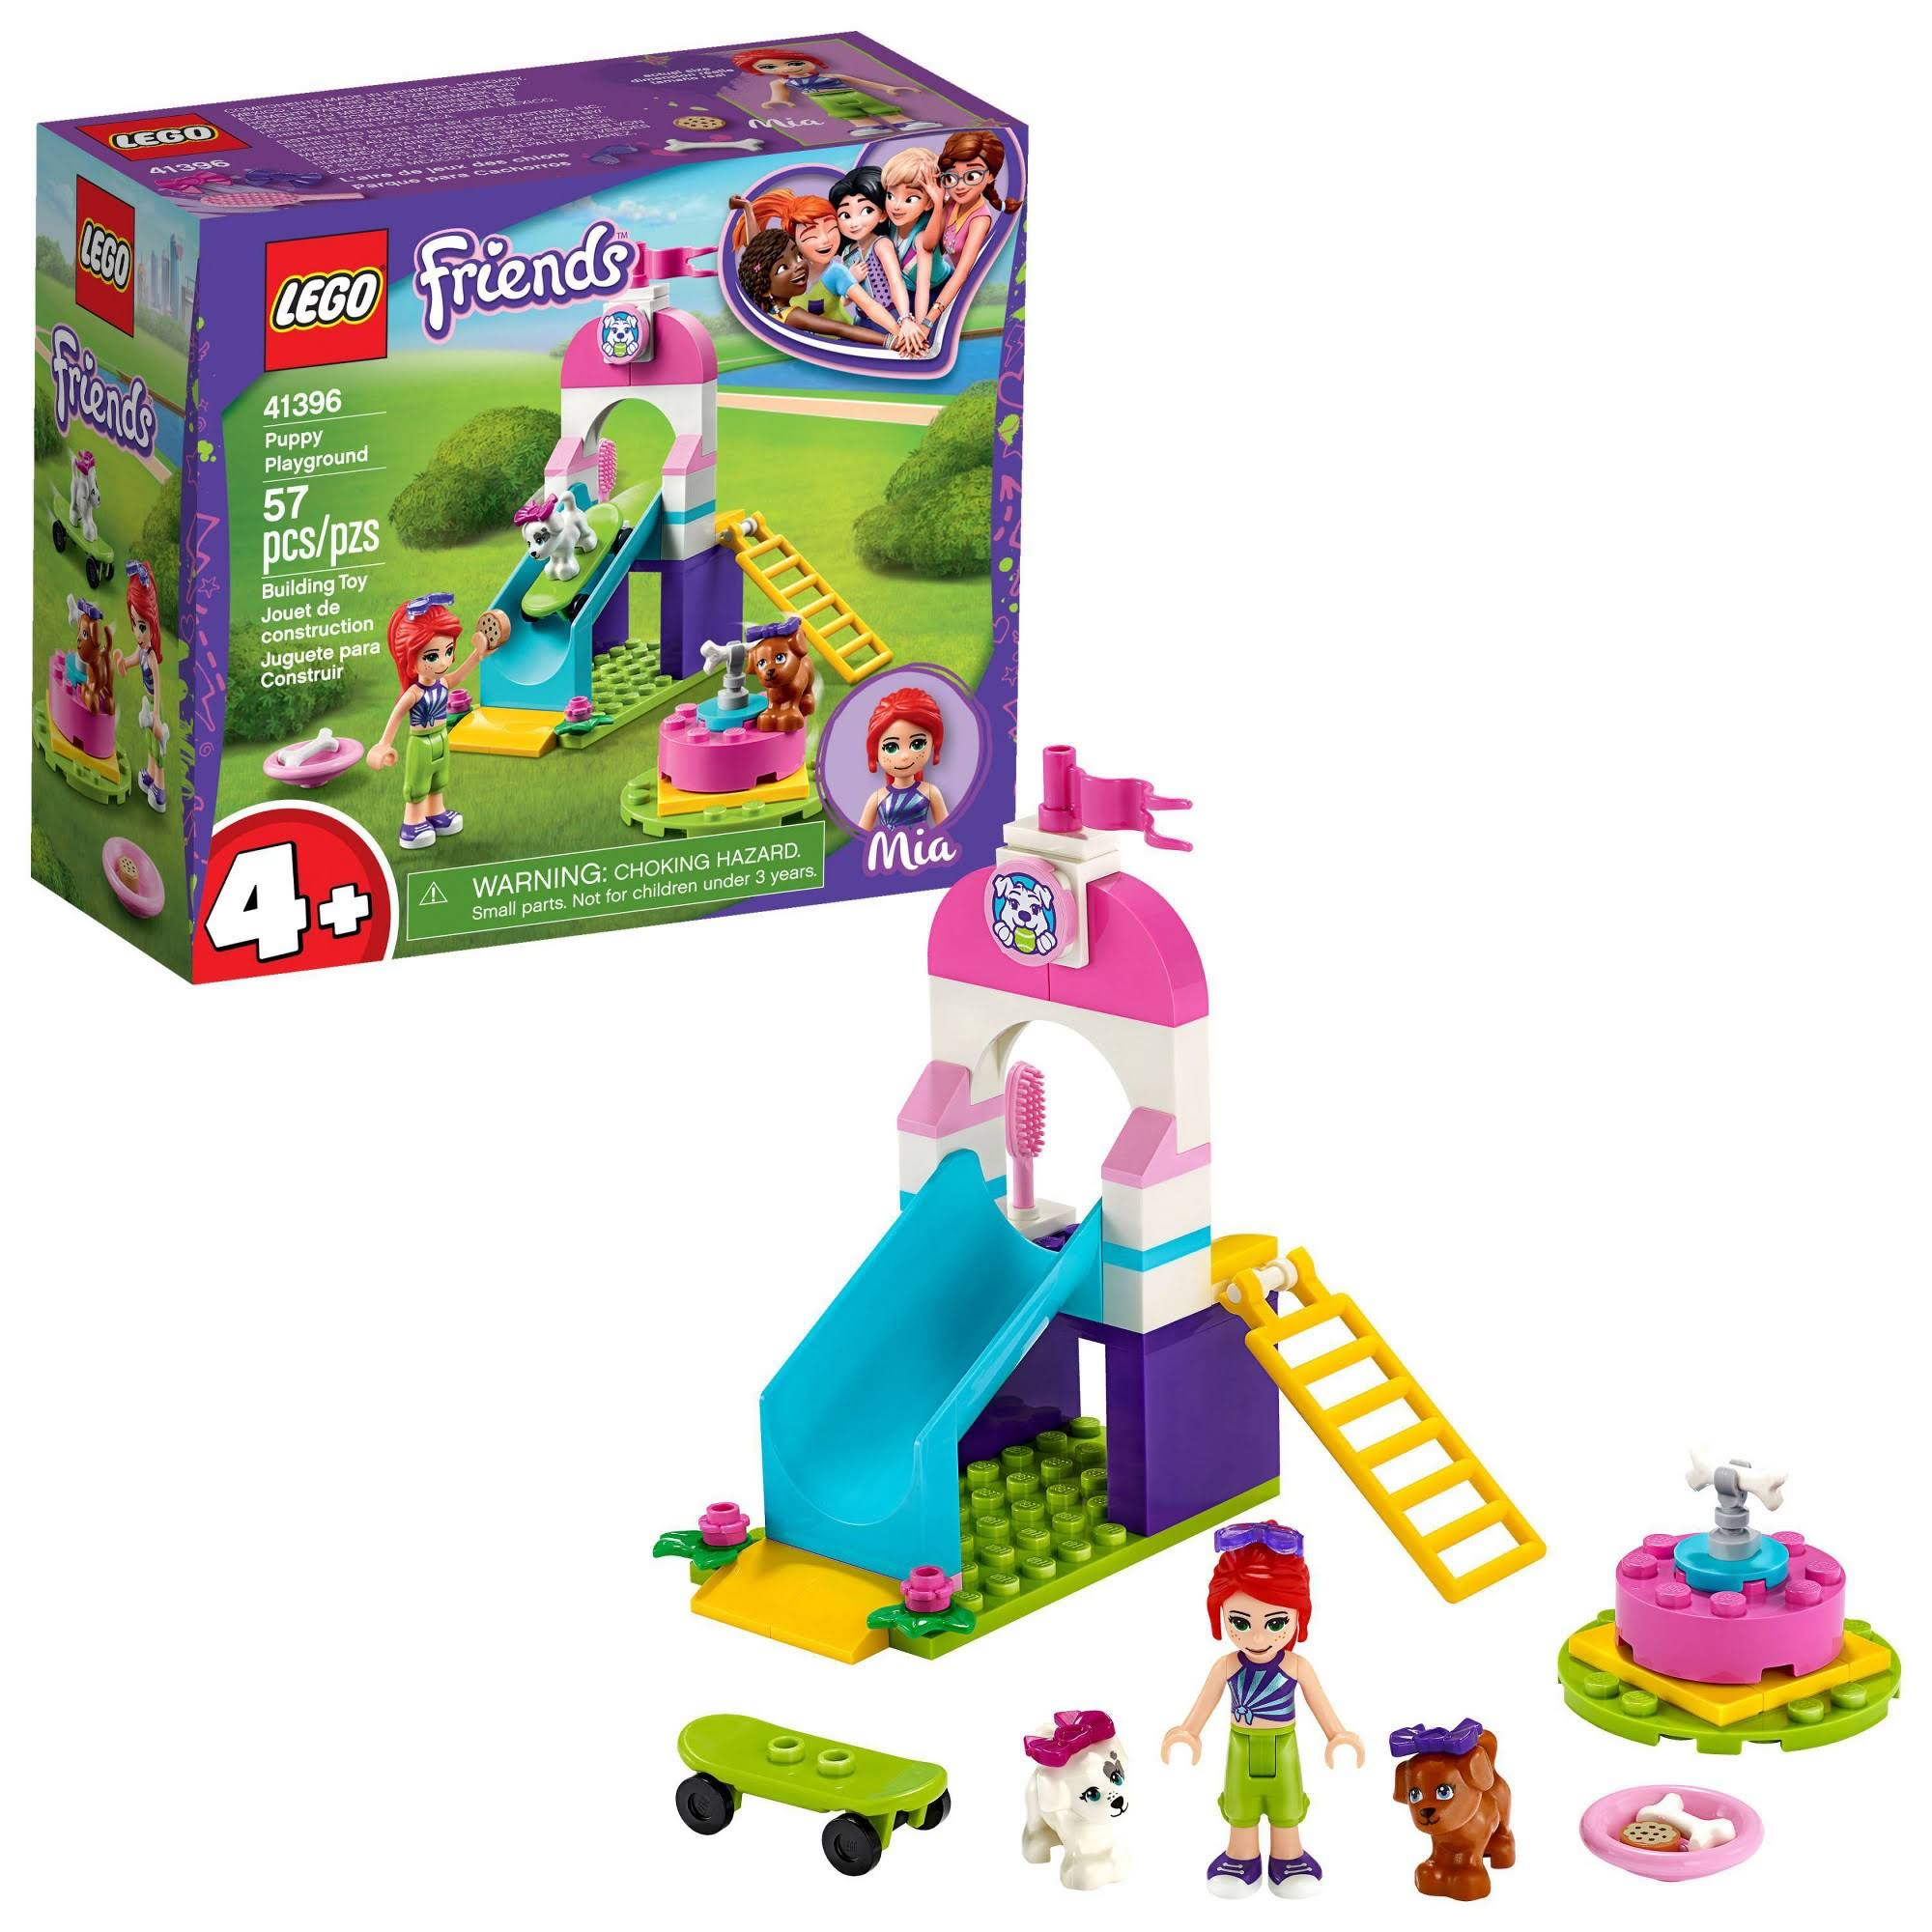 Lego Friends - Puppy Playground 41396